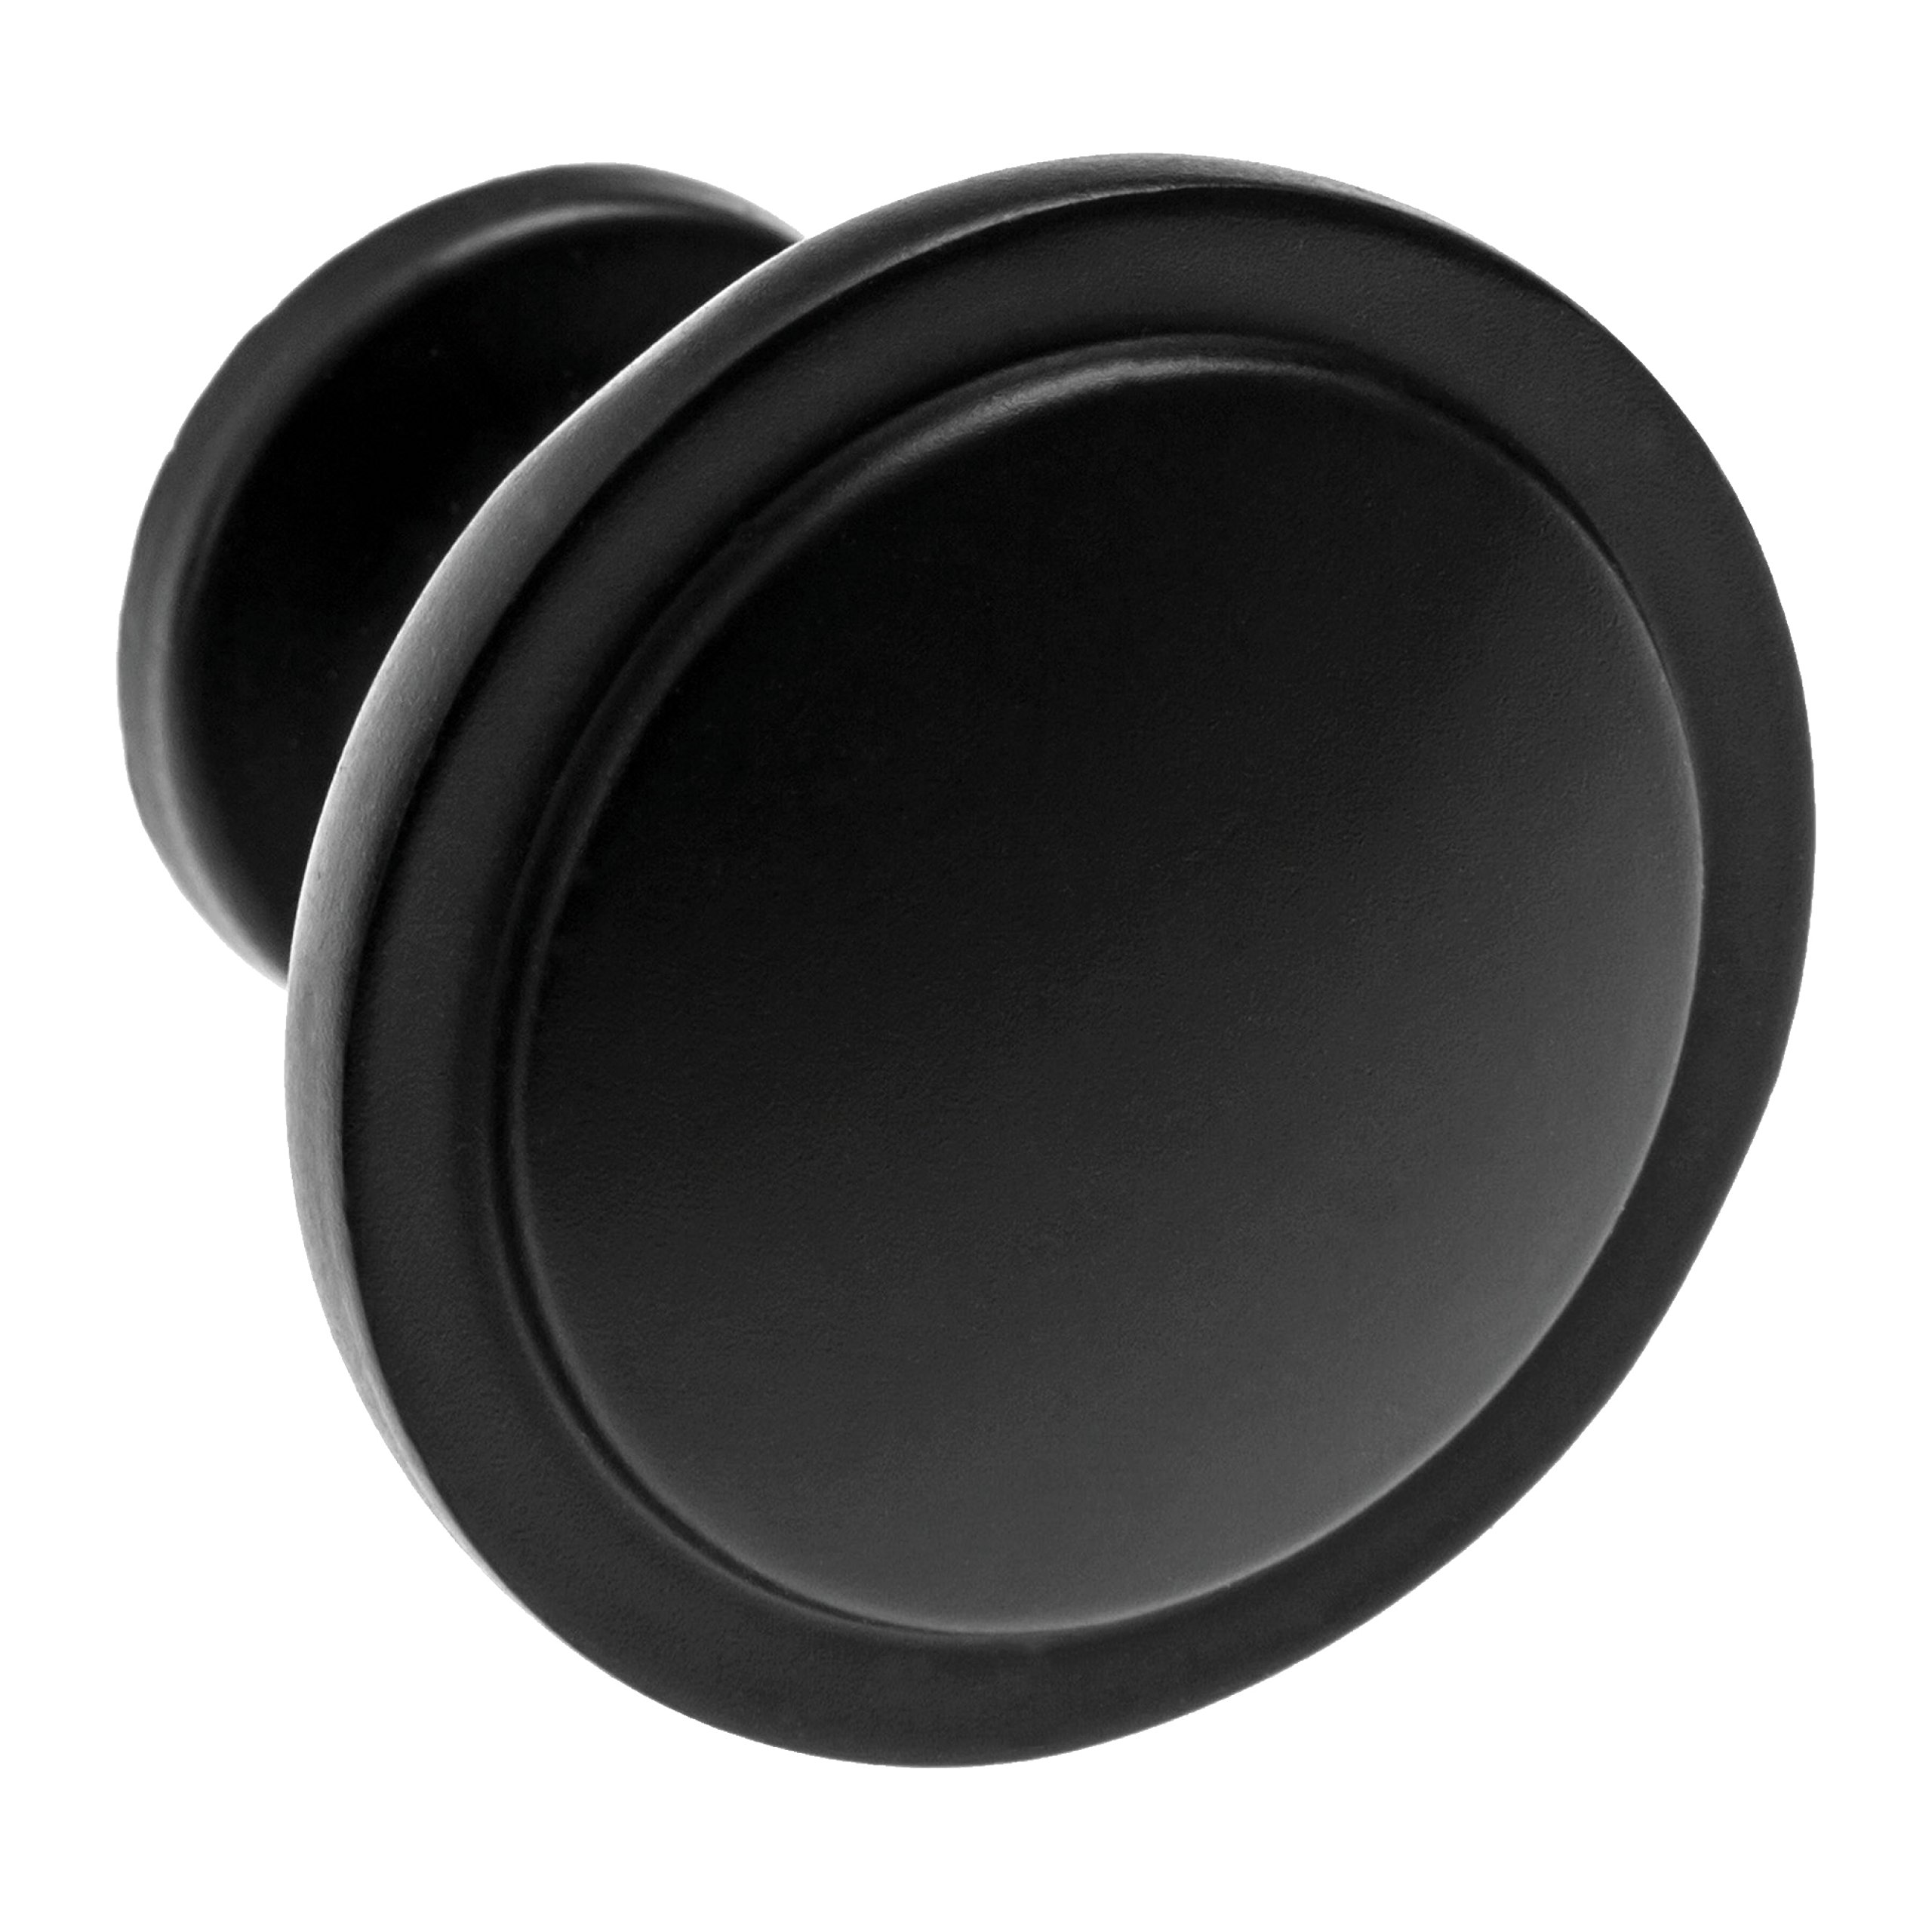 26 Beautiful Cabinet knobs Flat Black (26) Pack - Round Solid Metal knobs - Free Hardware Screws for Doors and Drawers - 1-1/4'' Diameter